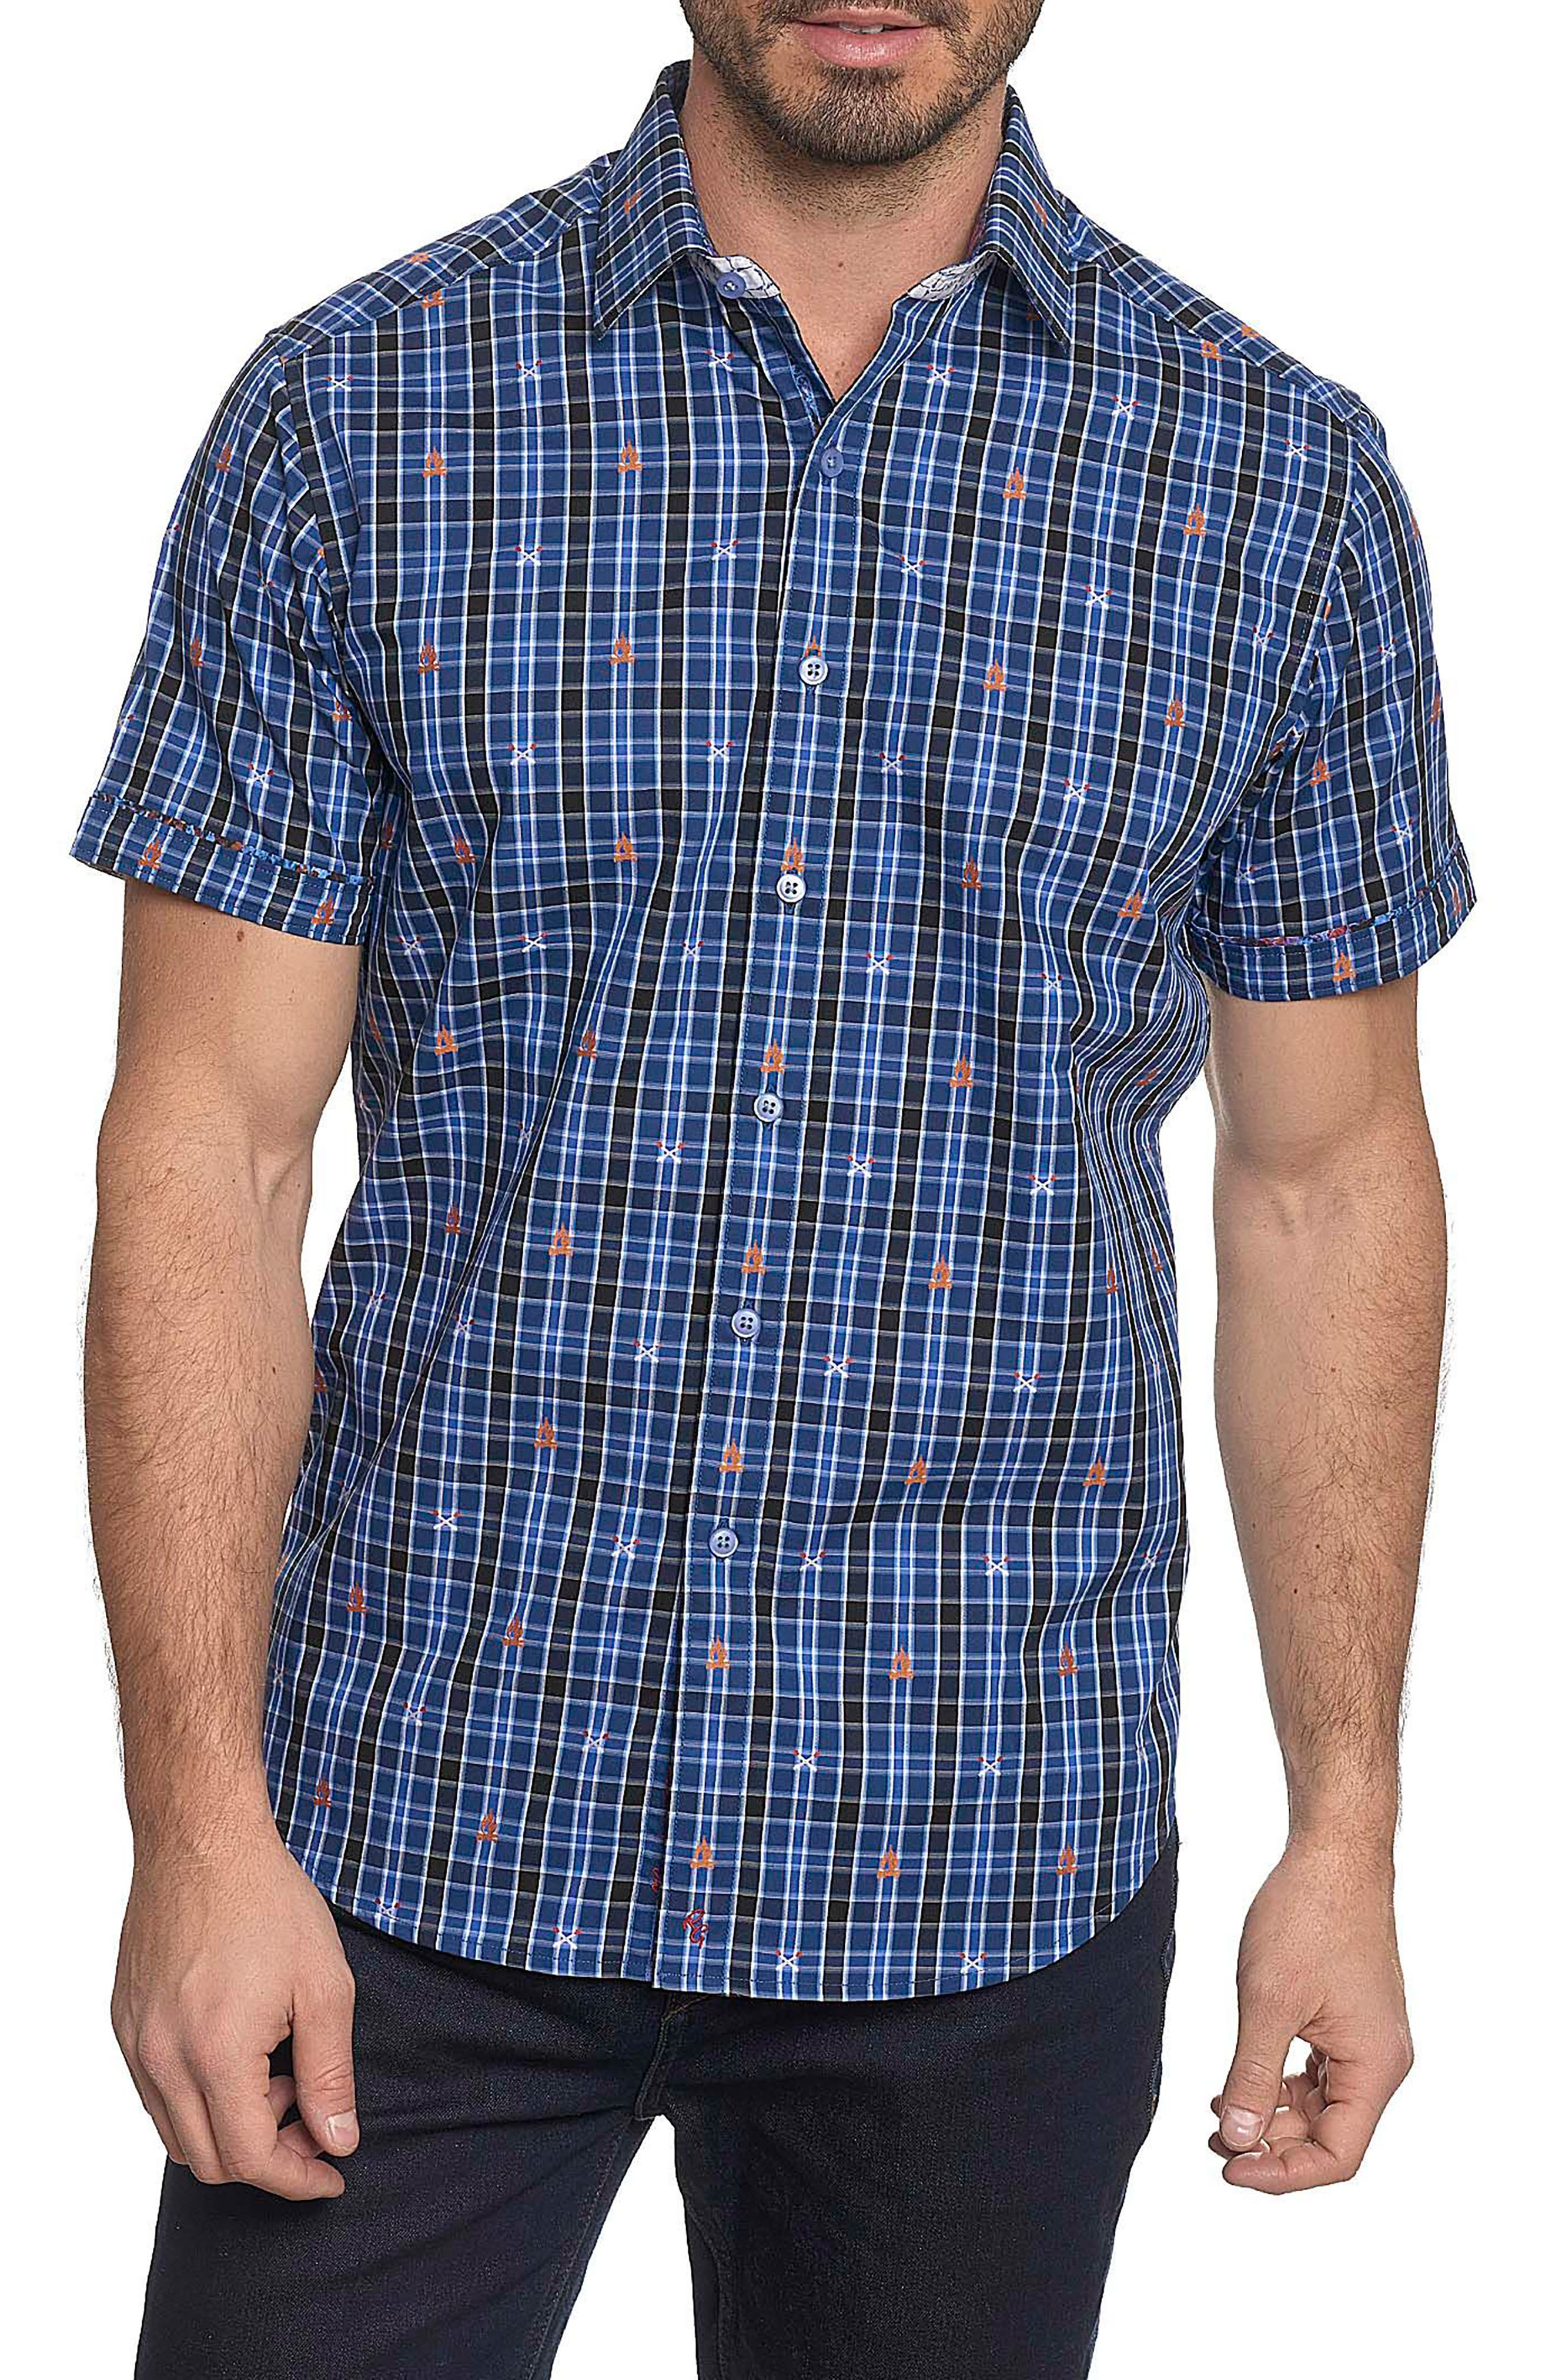 Main Image - Robert Graham Campfire Classic Fit Embroidered Check Sport Shirt (Tall)